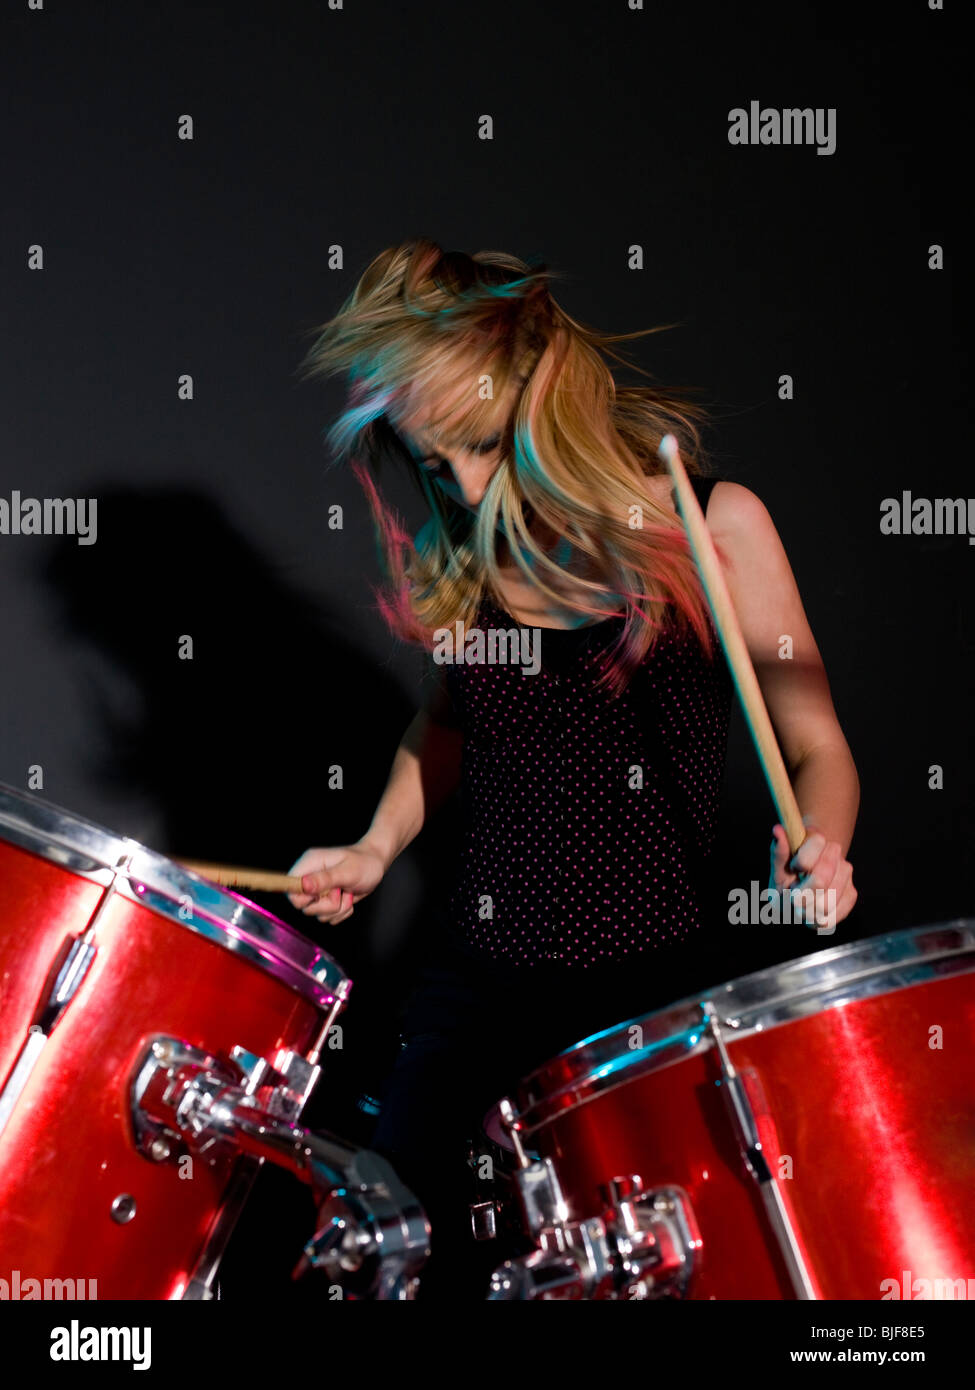 rocker girl on the drums - Stock Image